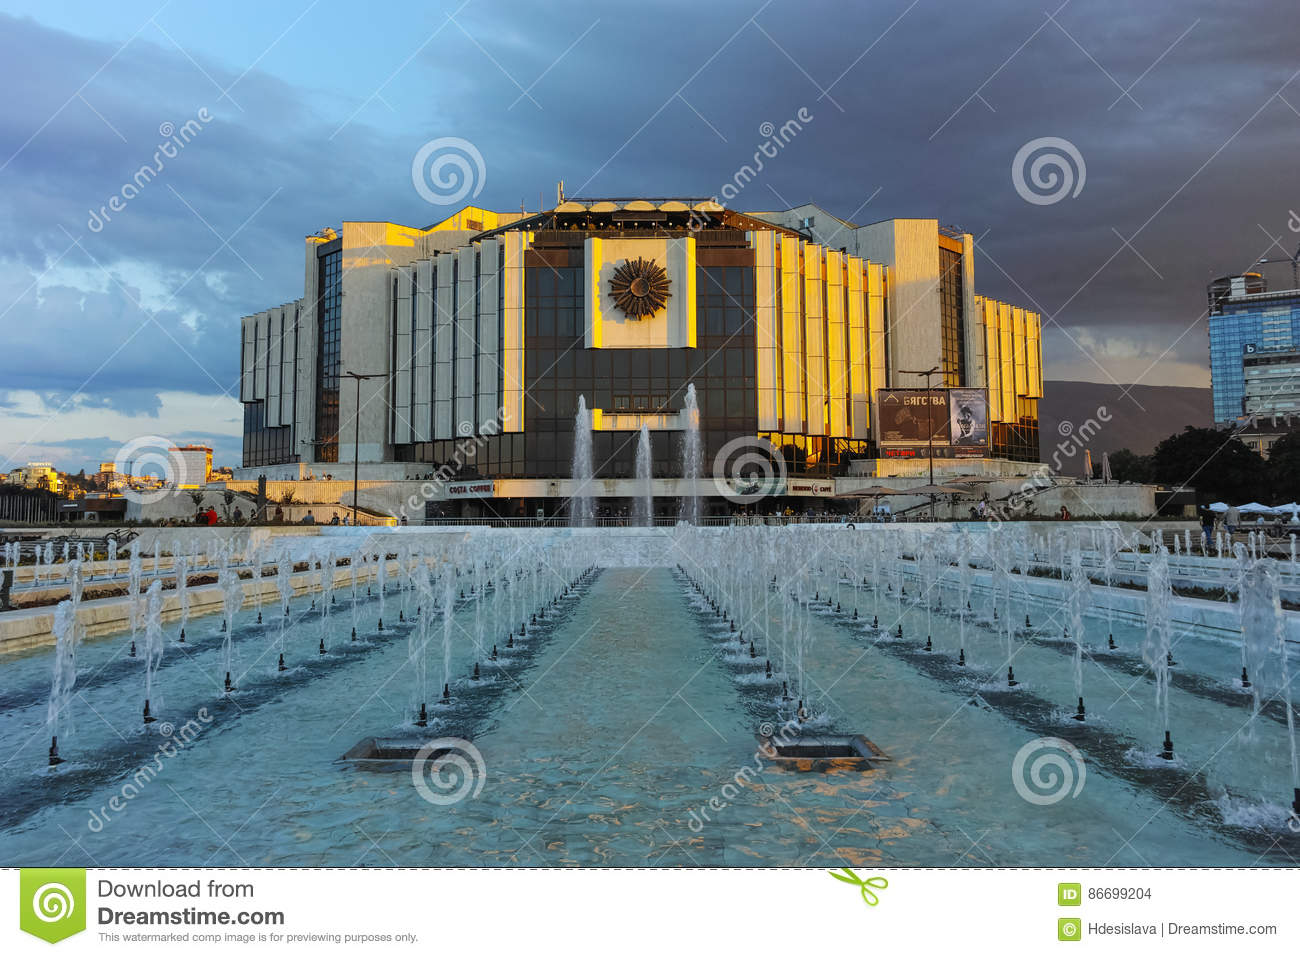 SOFIA, BULGARIA - JULY 3, 2016: Sunset view of National Palace of Culture in Sofia